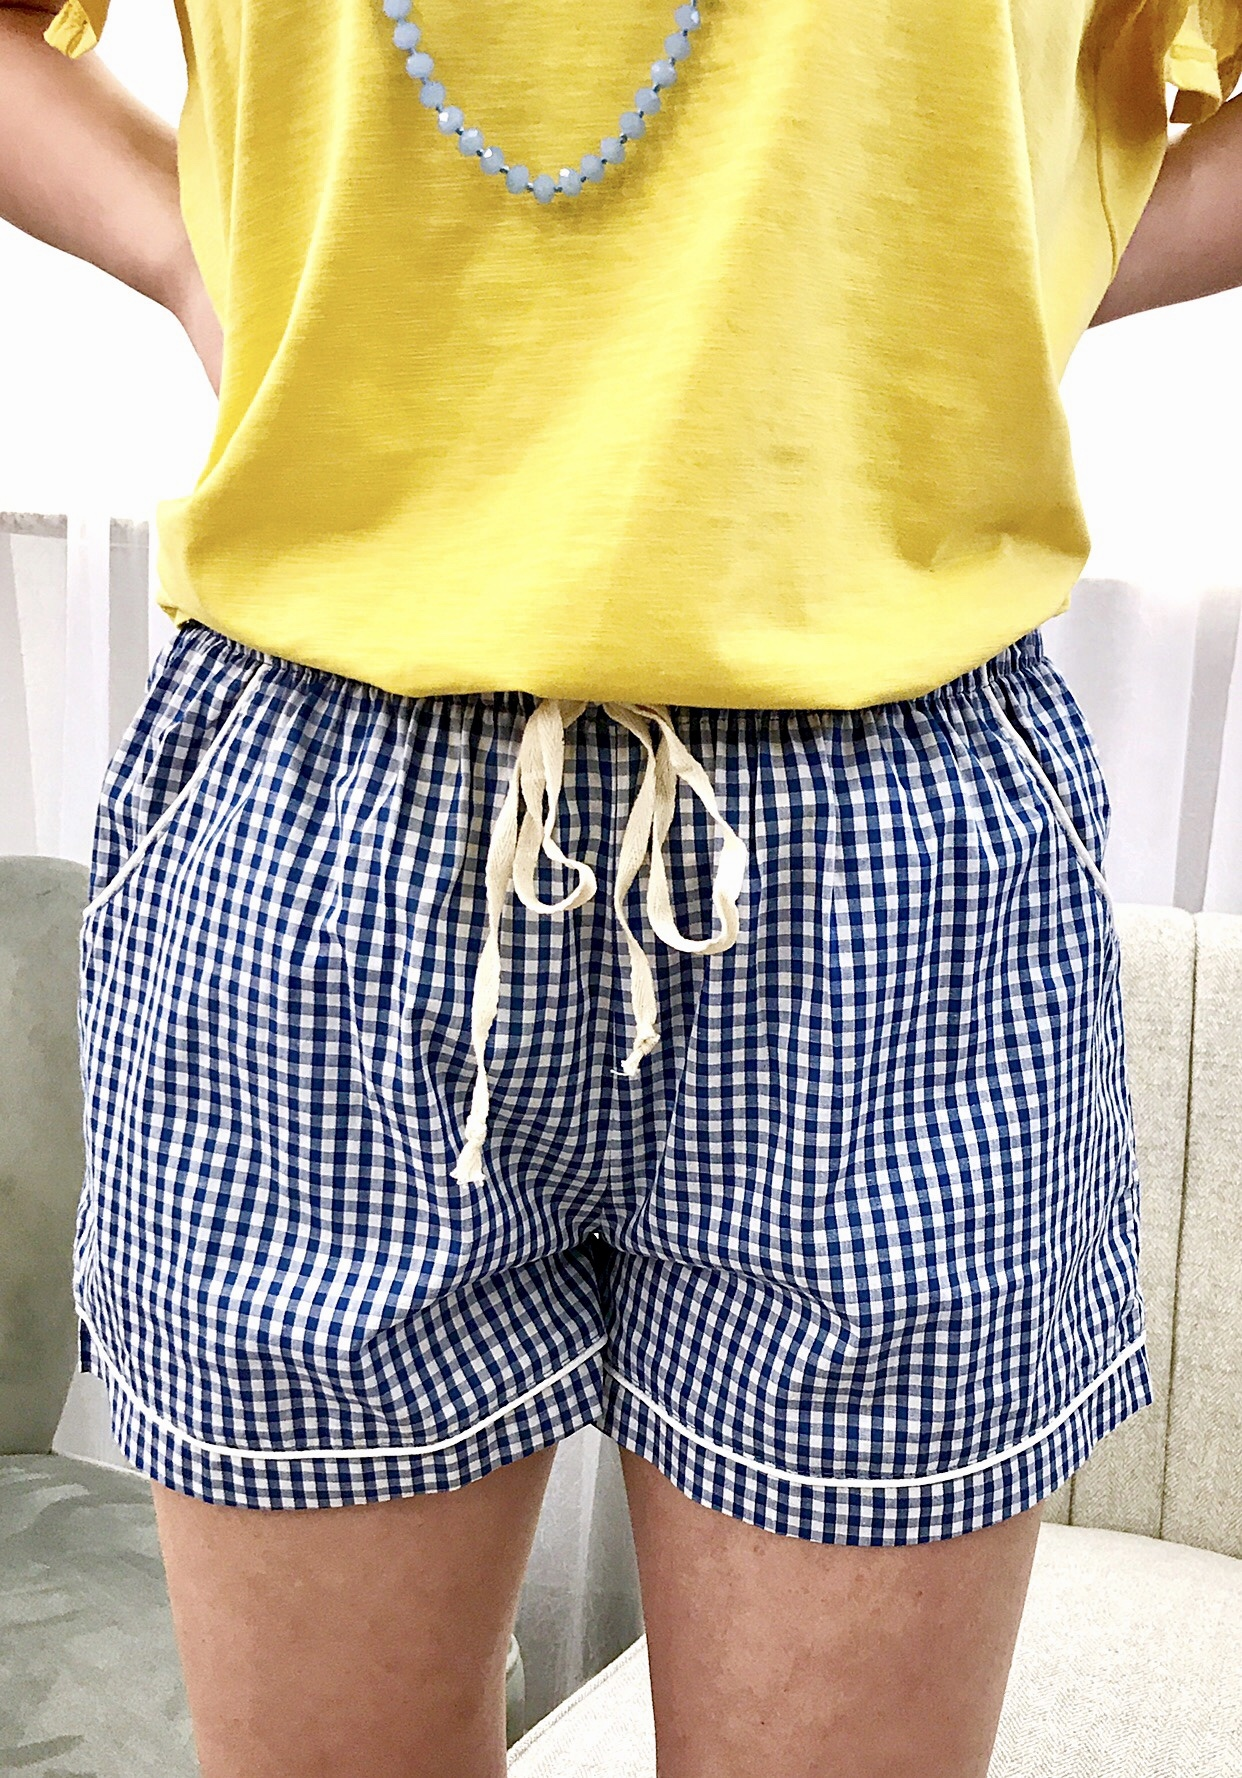 Blue Gingham Shorts